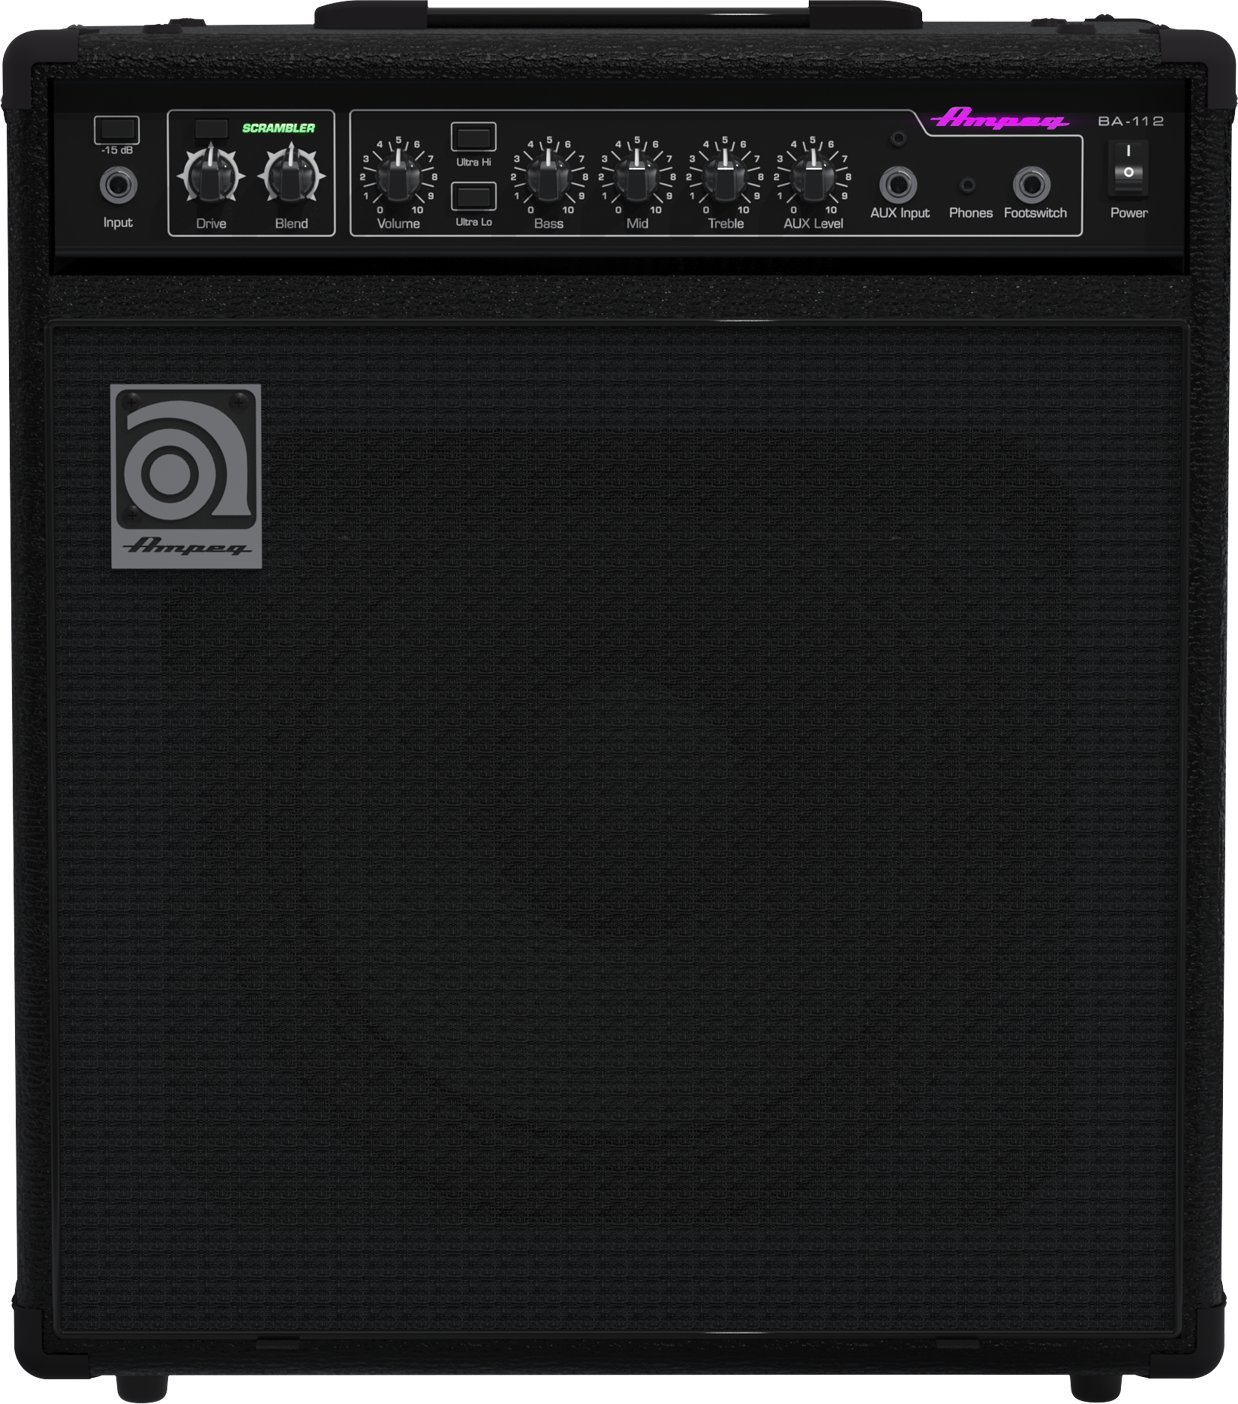 Top 10 Best Bass Combo Amp Under $200 to $300 7